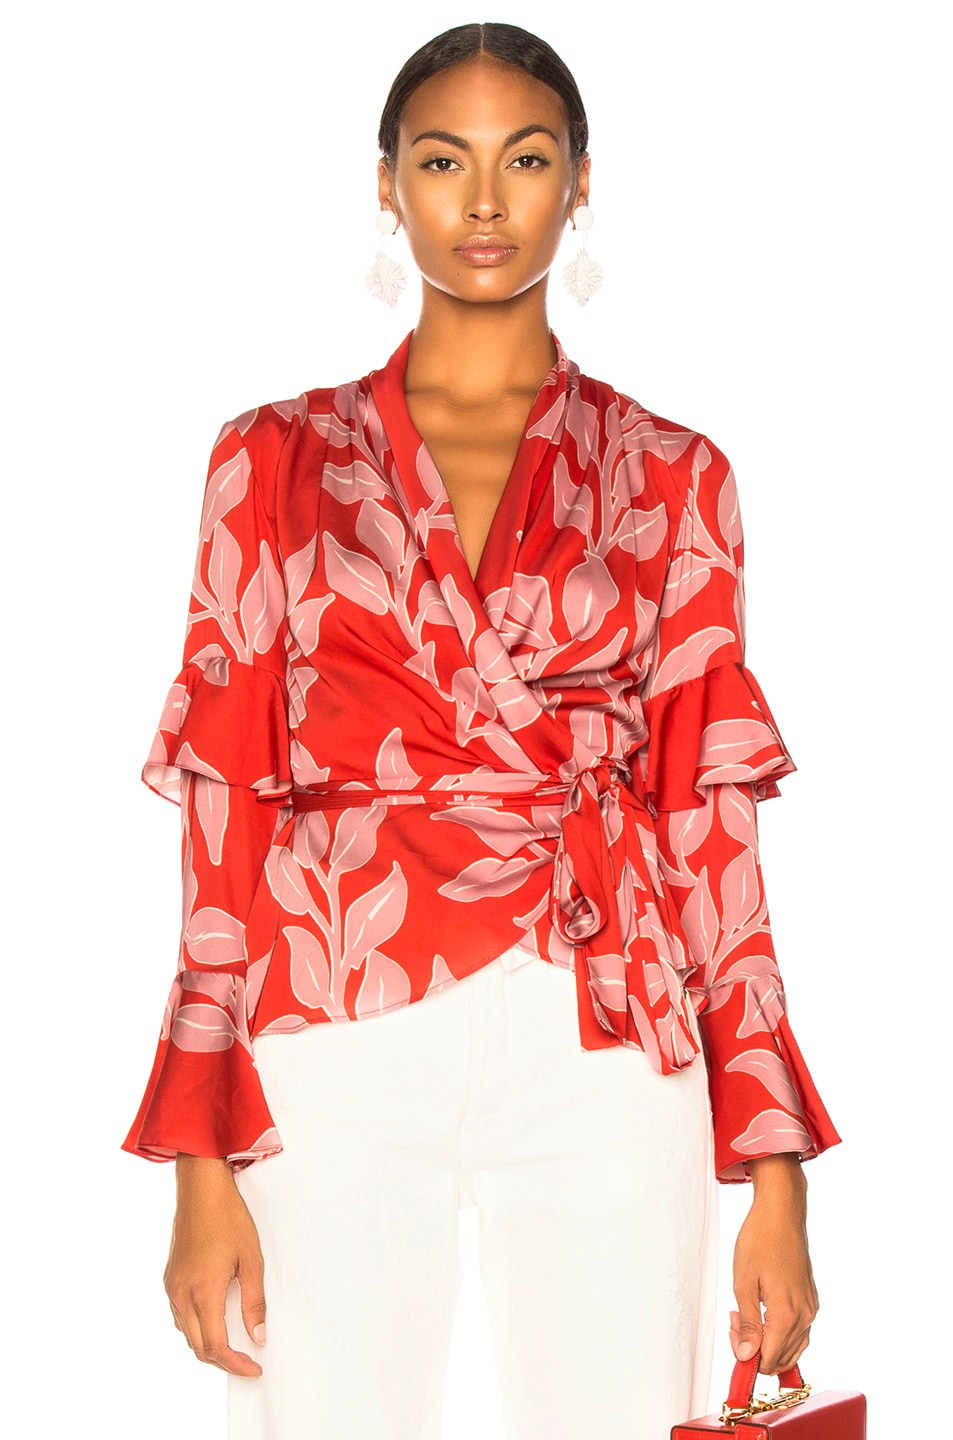 bb96fc64a6c8a1 Image 1 of PatBo Leaf Print Wrap Top in Hot Pink